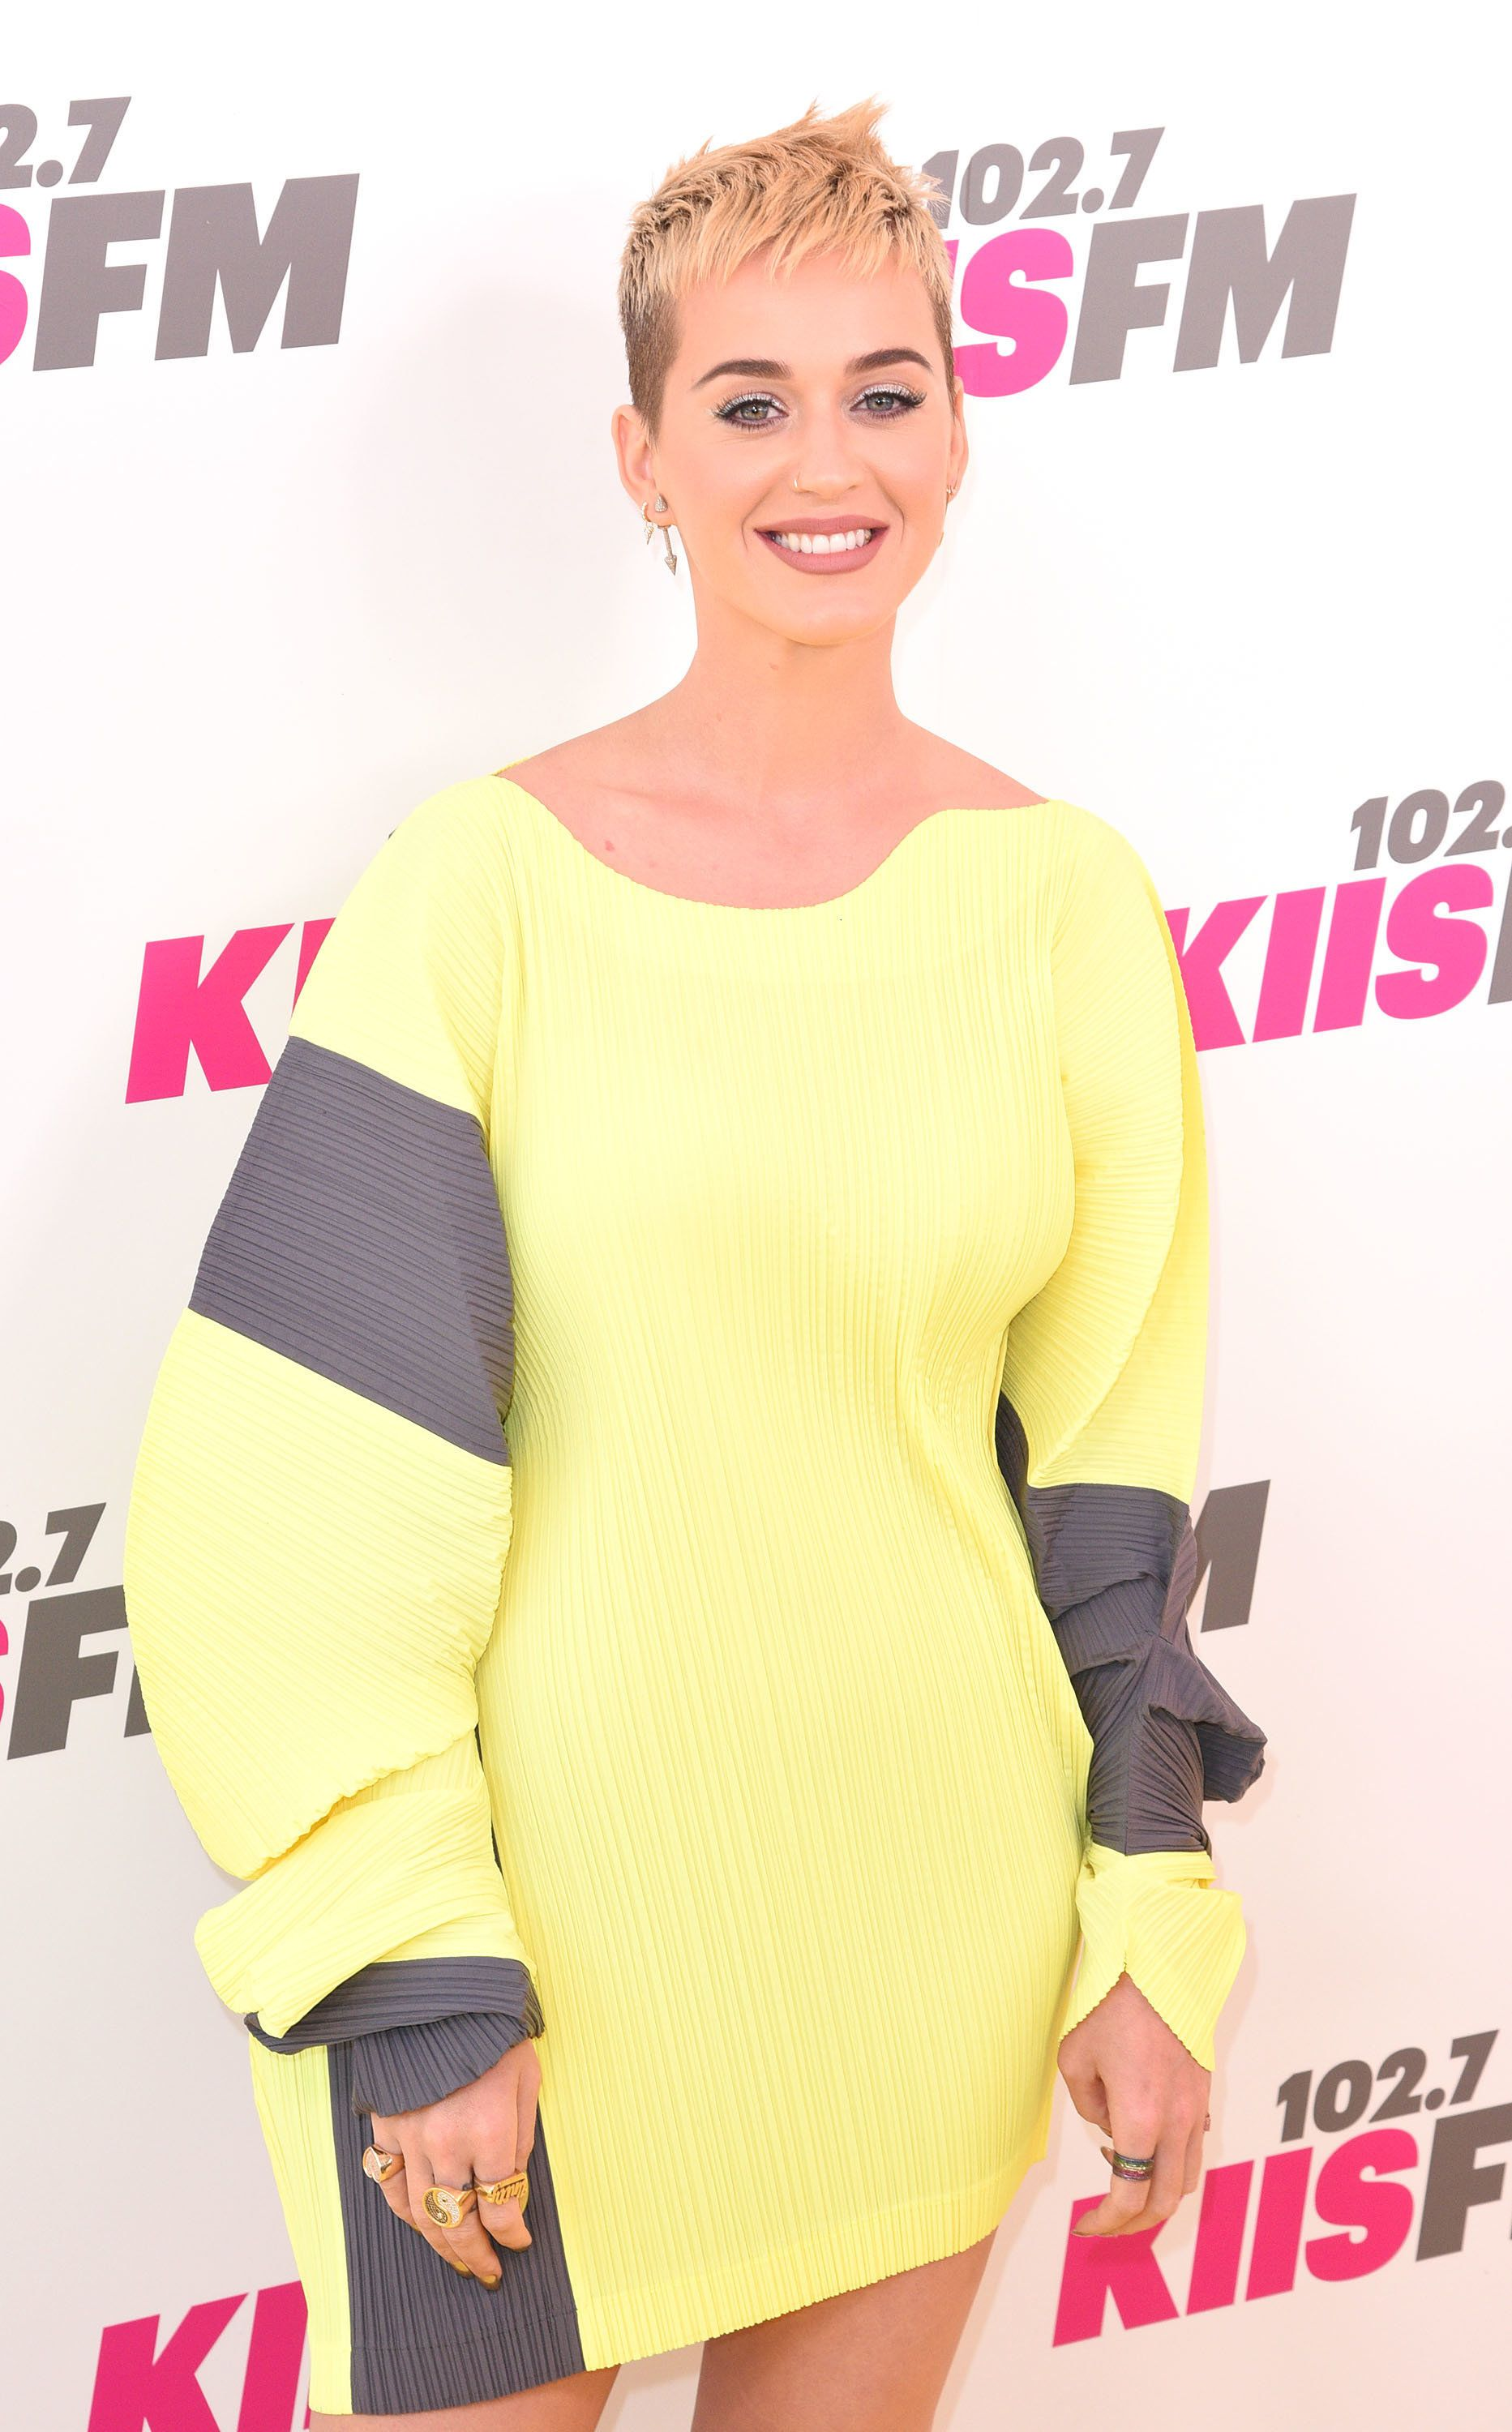 CARSON, CA - MAY 13:  Katy Perry attends KIIS FM's 2017 Wango Tango at StubHub Center on May 13, 2017 in Carson, California.  (Photo by C Flanigan/Getty Images)